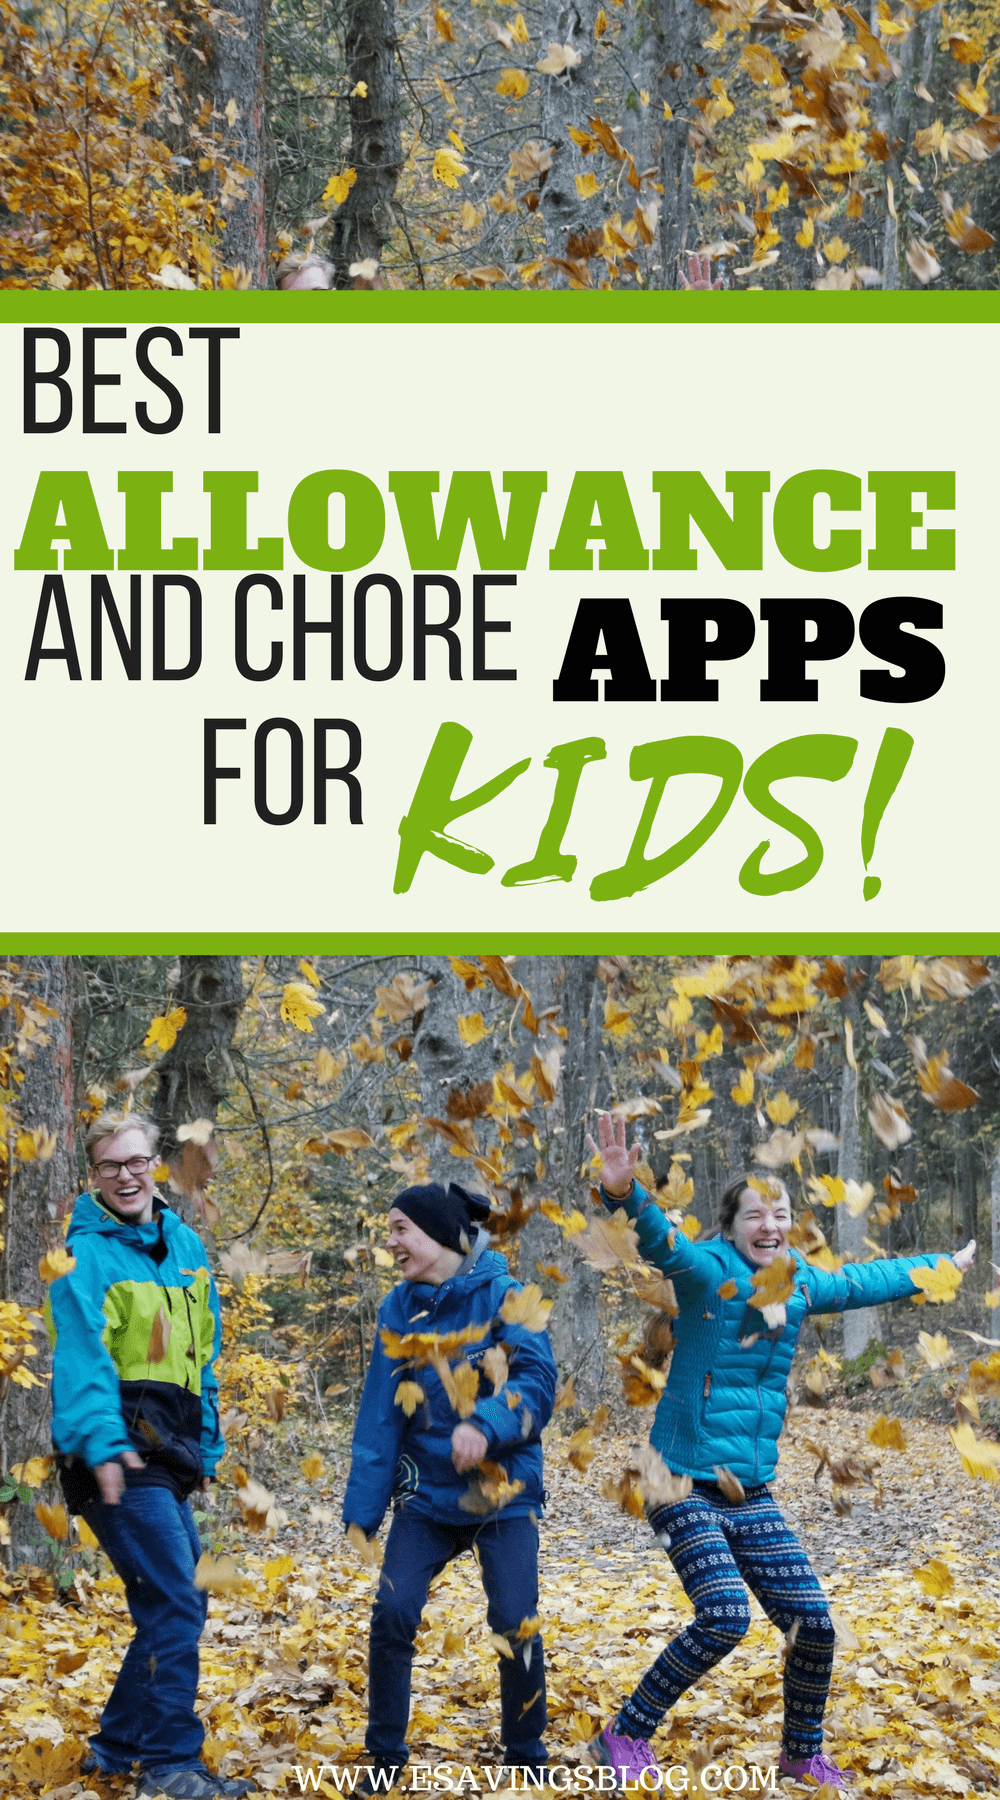 best chore app for adults